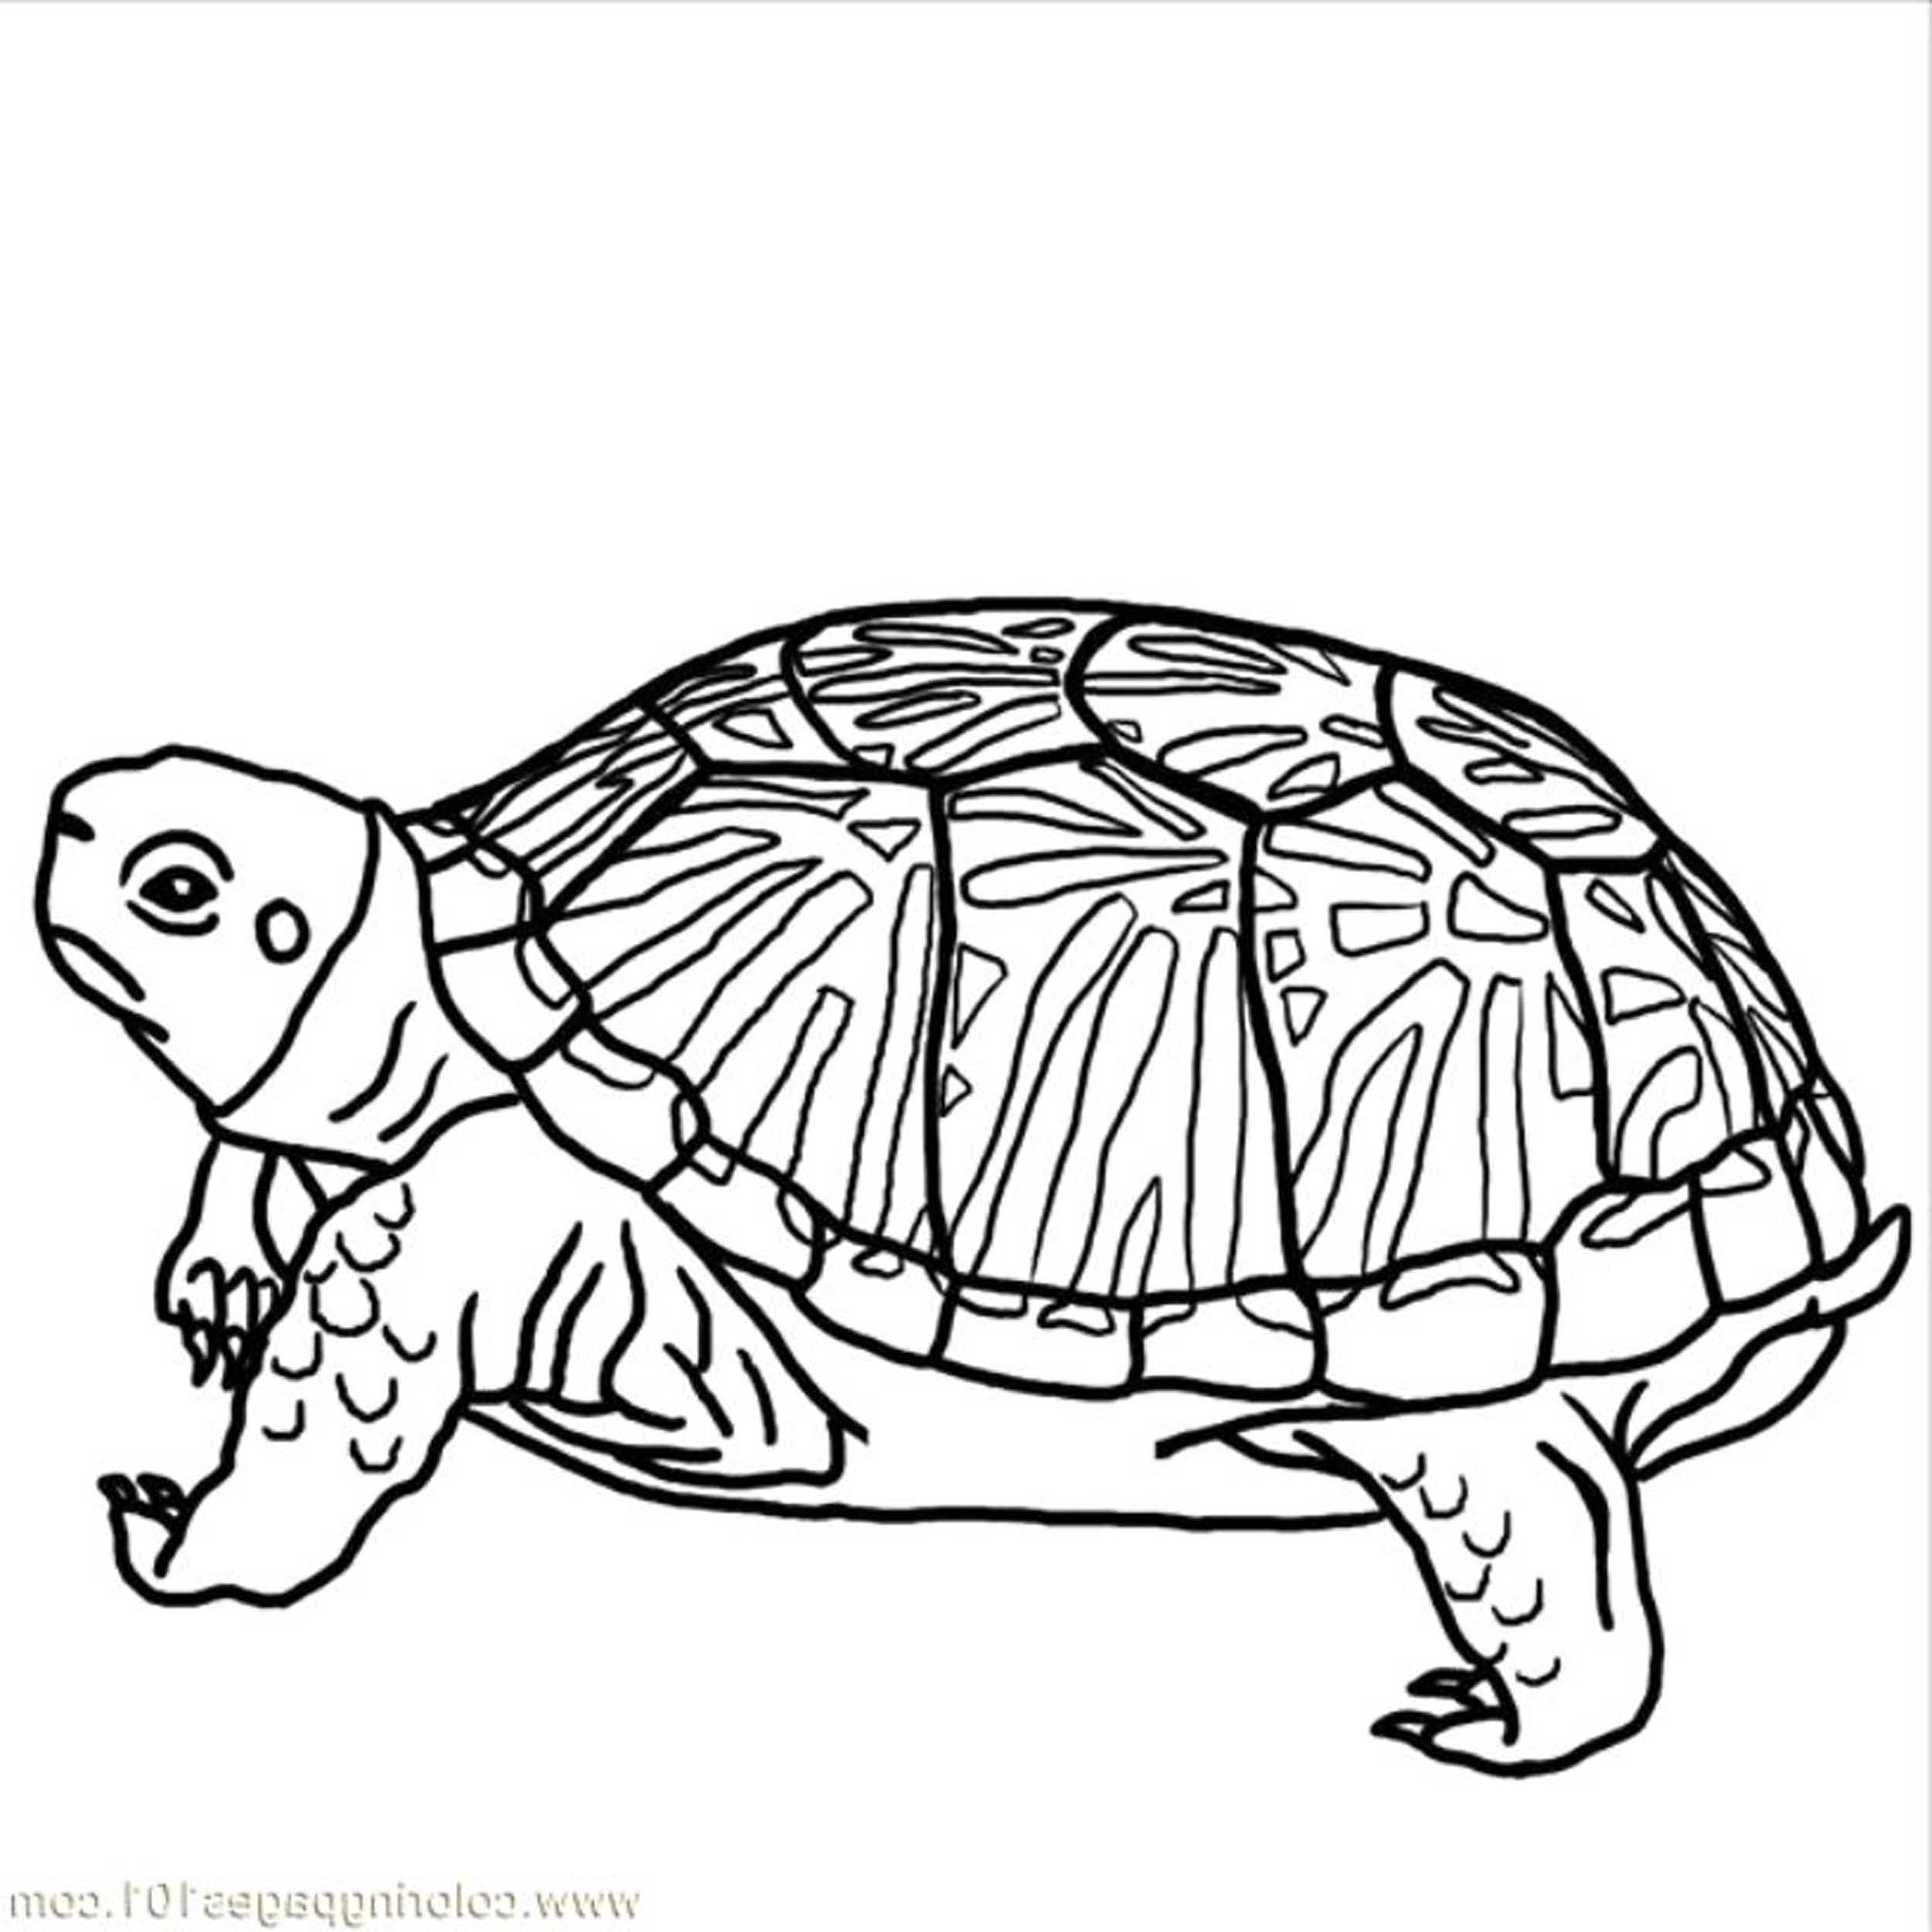 turtle pictures for coloring free printable turtle coloring pages for kids pictures coloring for turtle